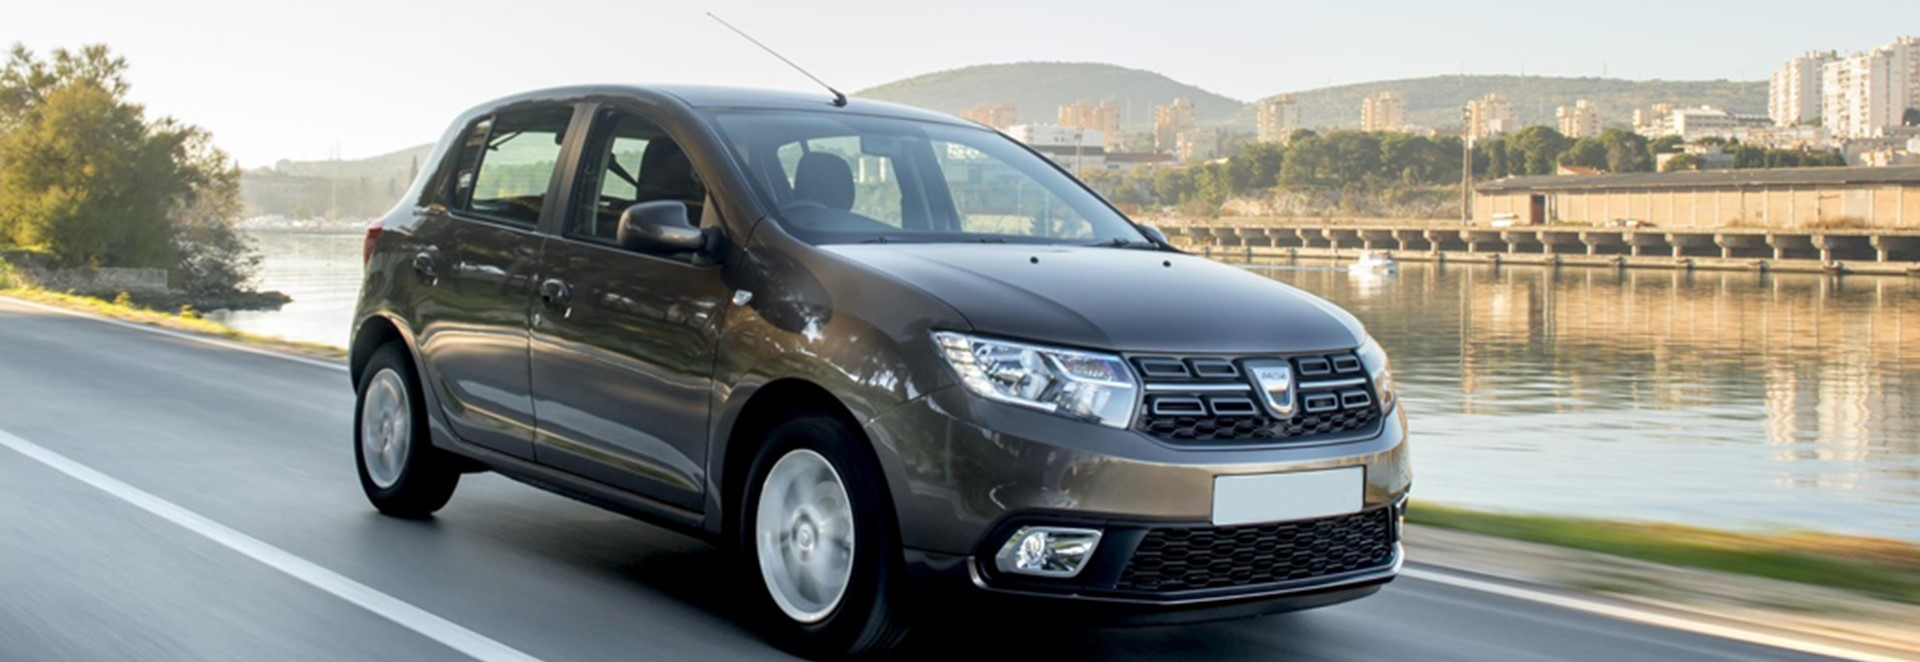 Dacia Sandero Prices